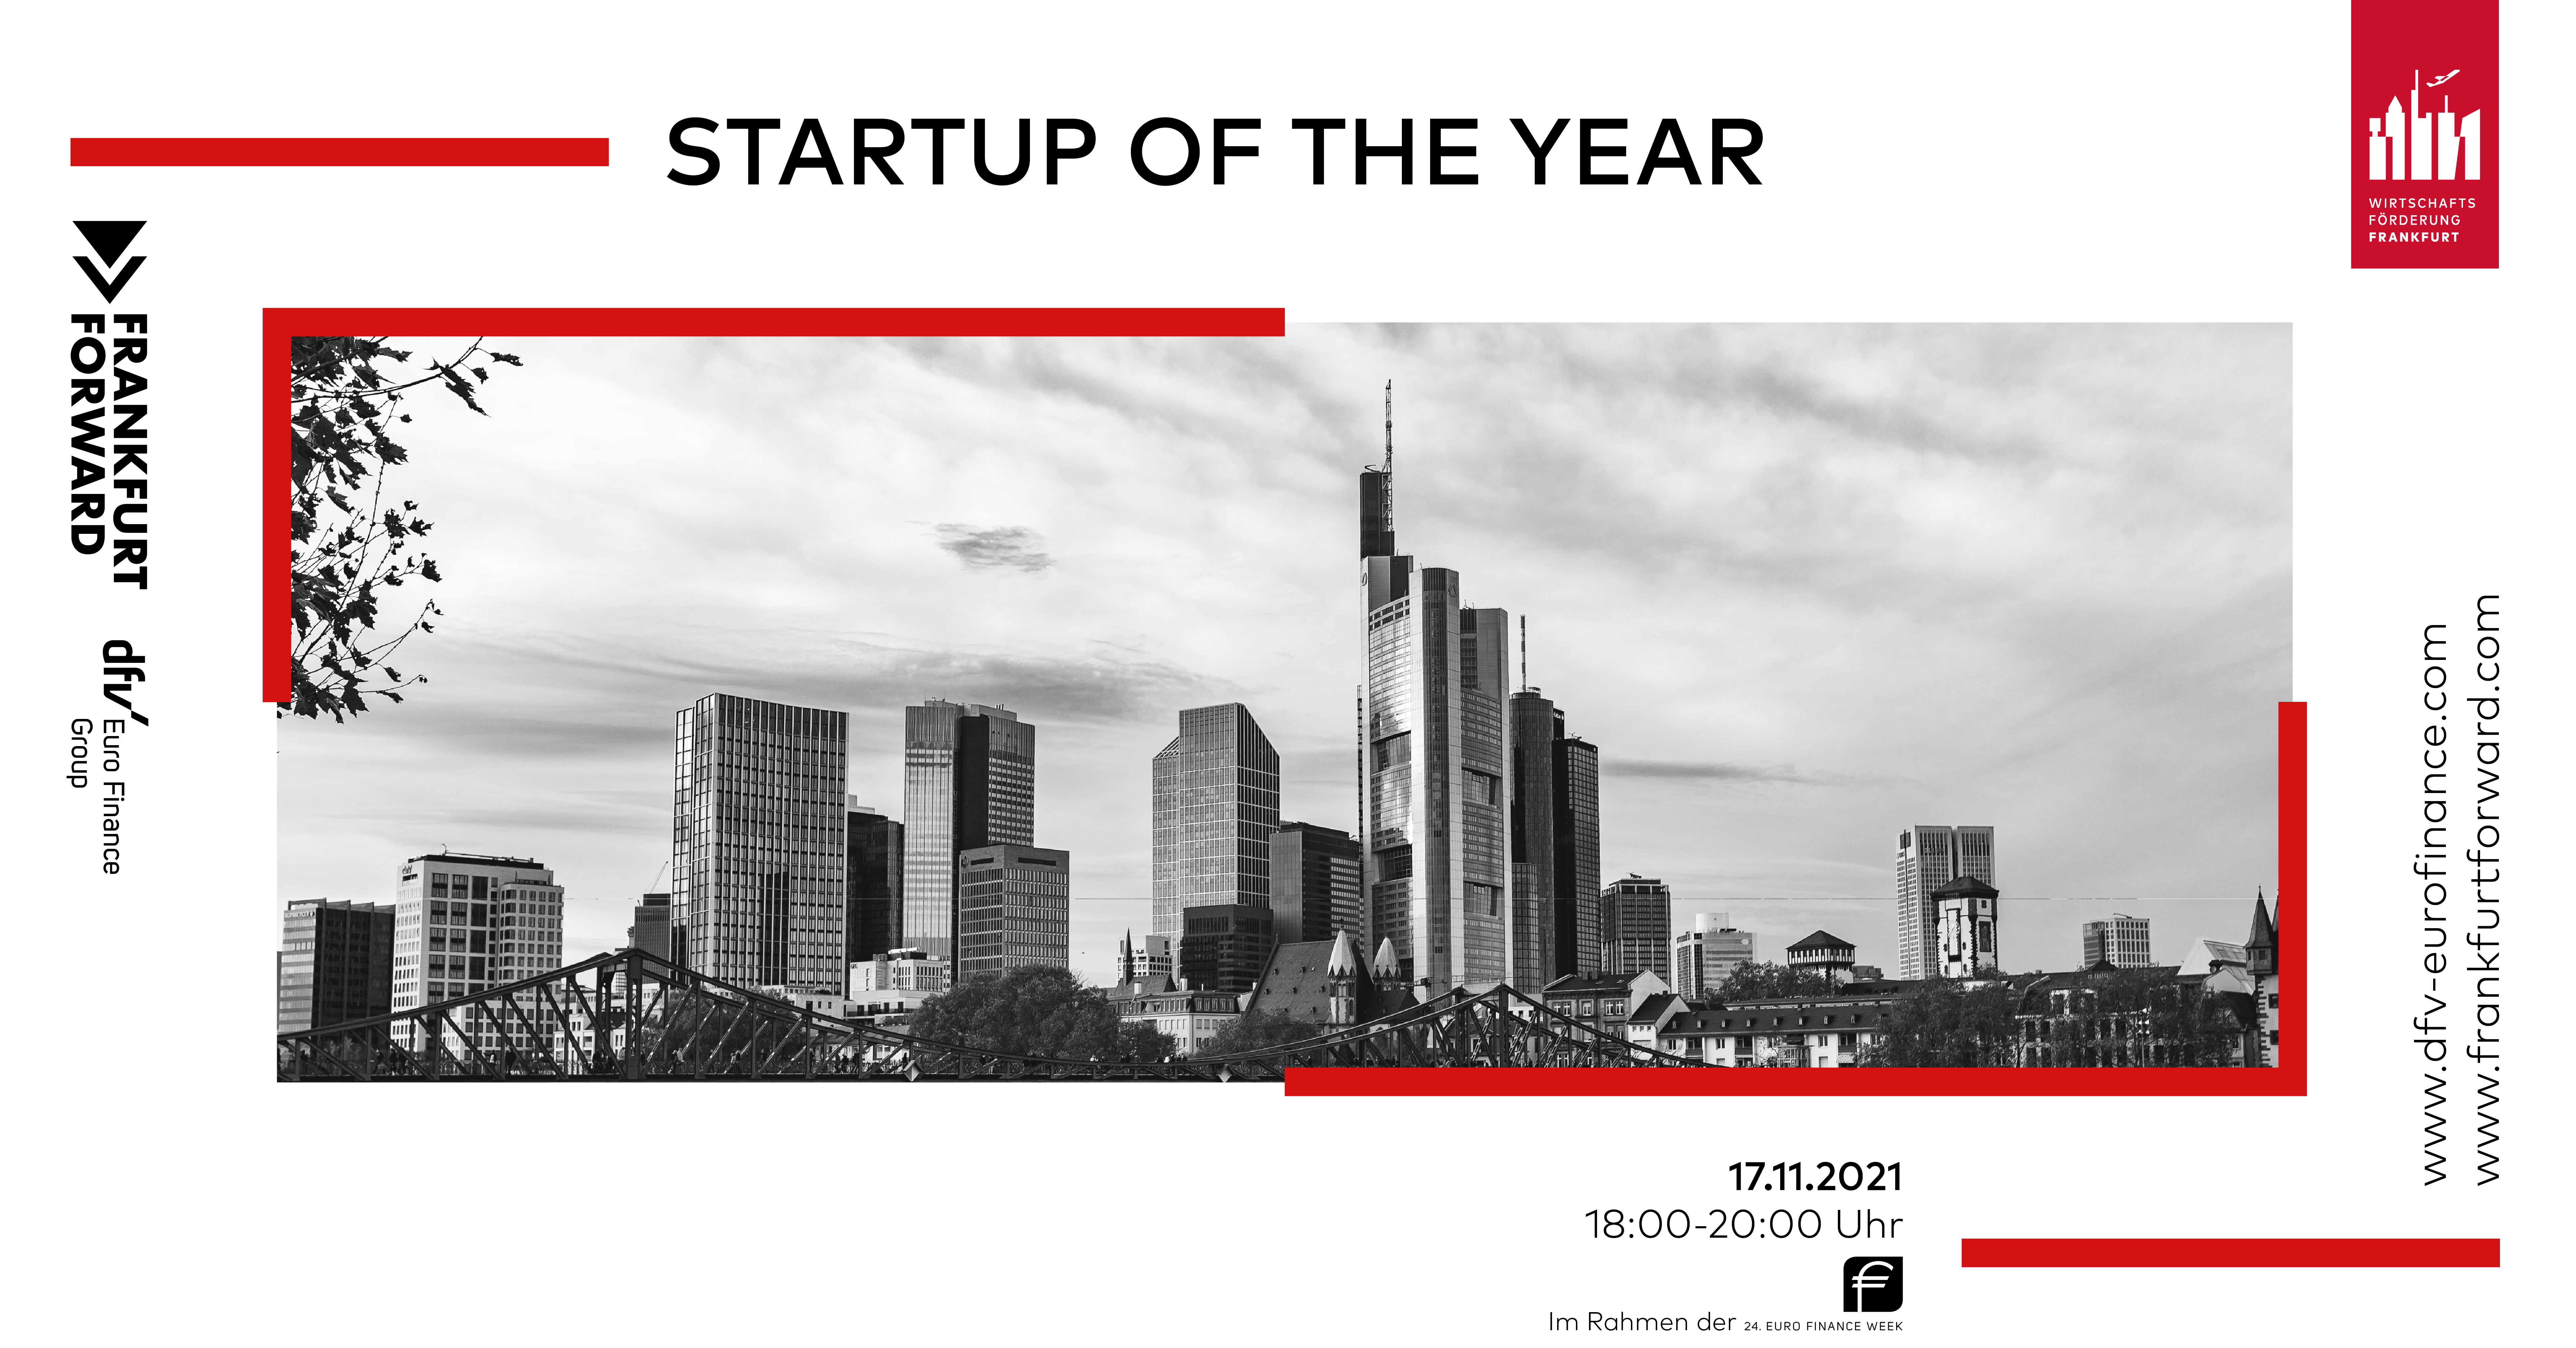 Startup of the Year - EURO FINANCE Tech Day 2021